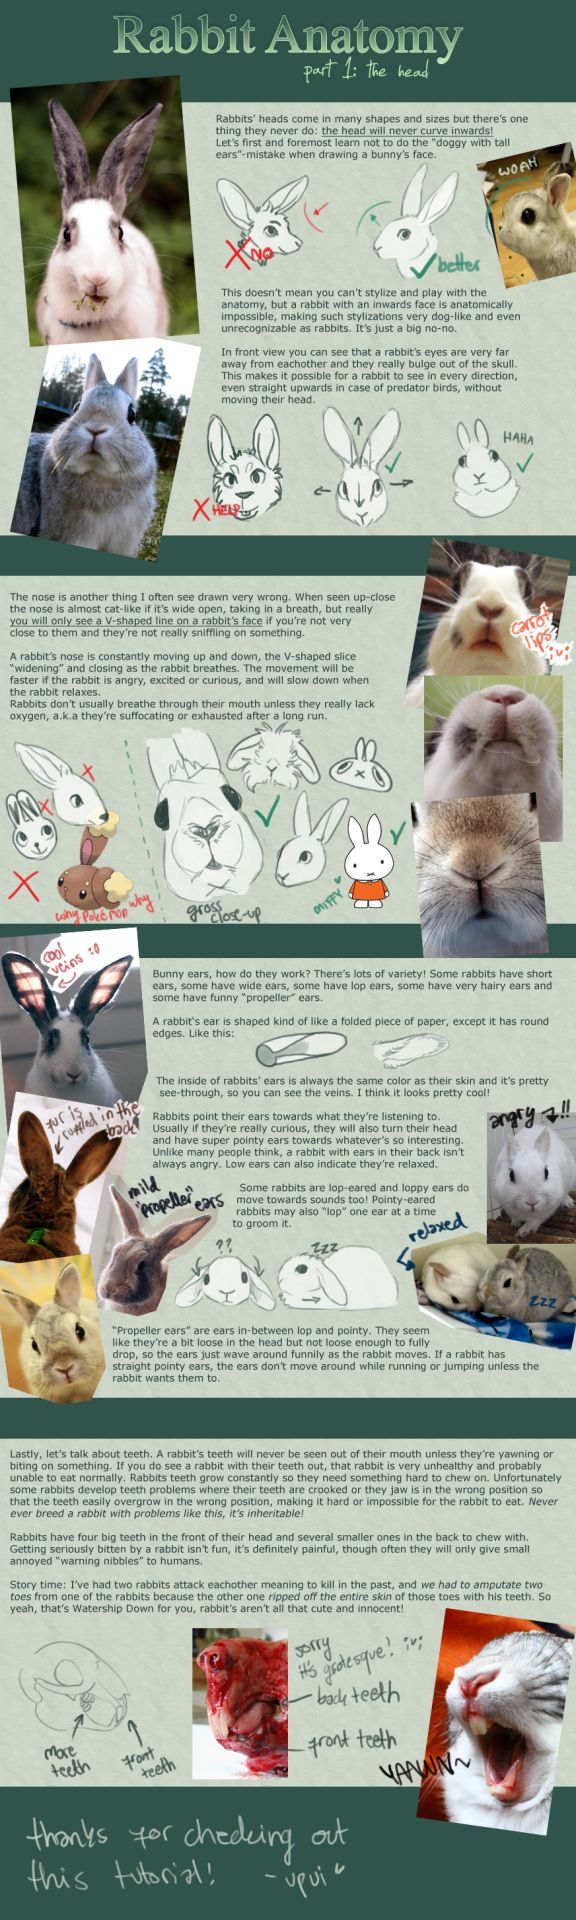 Rabbit Anatomy / Part 1: the head by upuiSee artist's comment for parts 2 & 3.